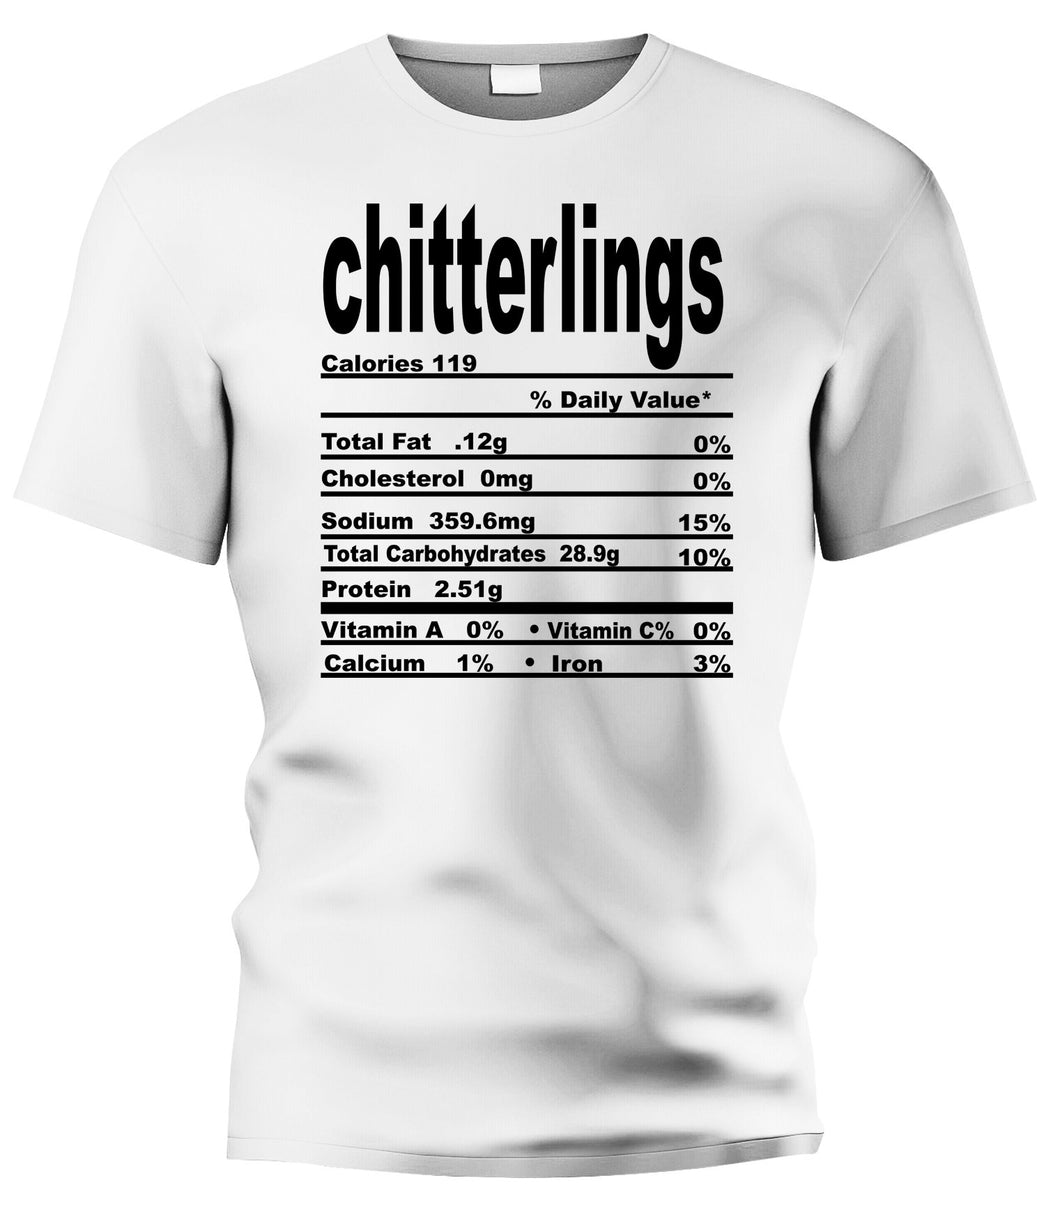 Chitterlings Nutritional Facts Tee